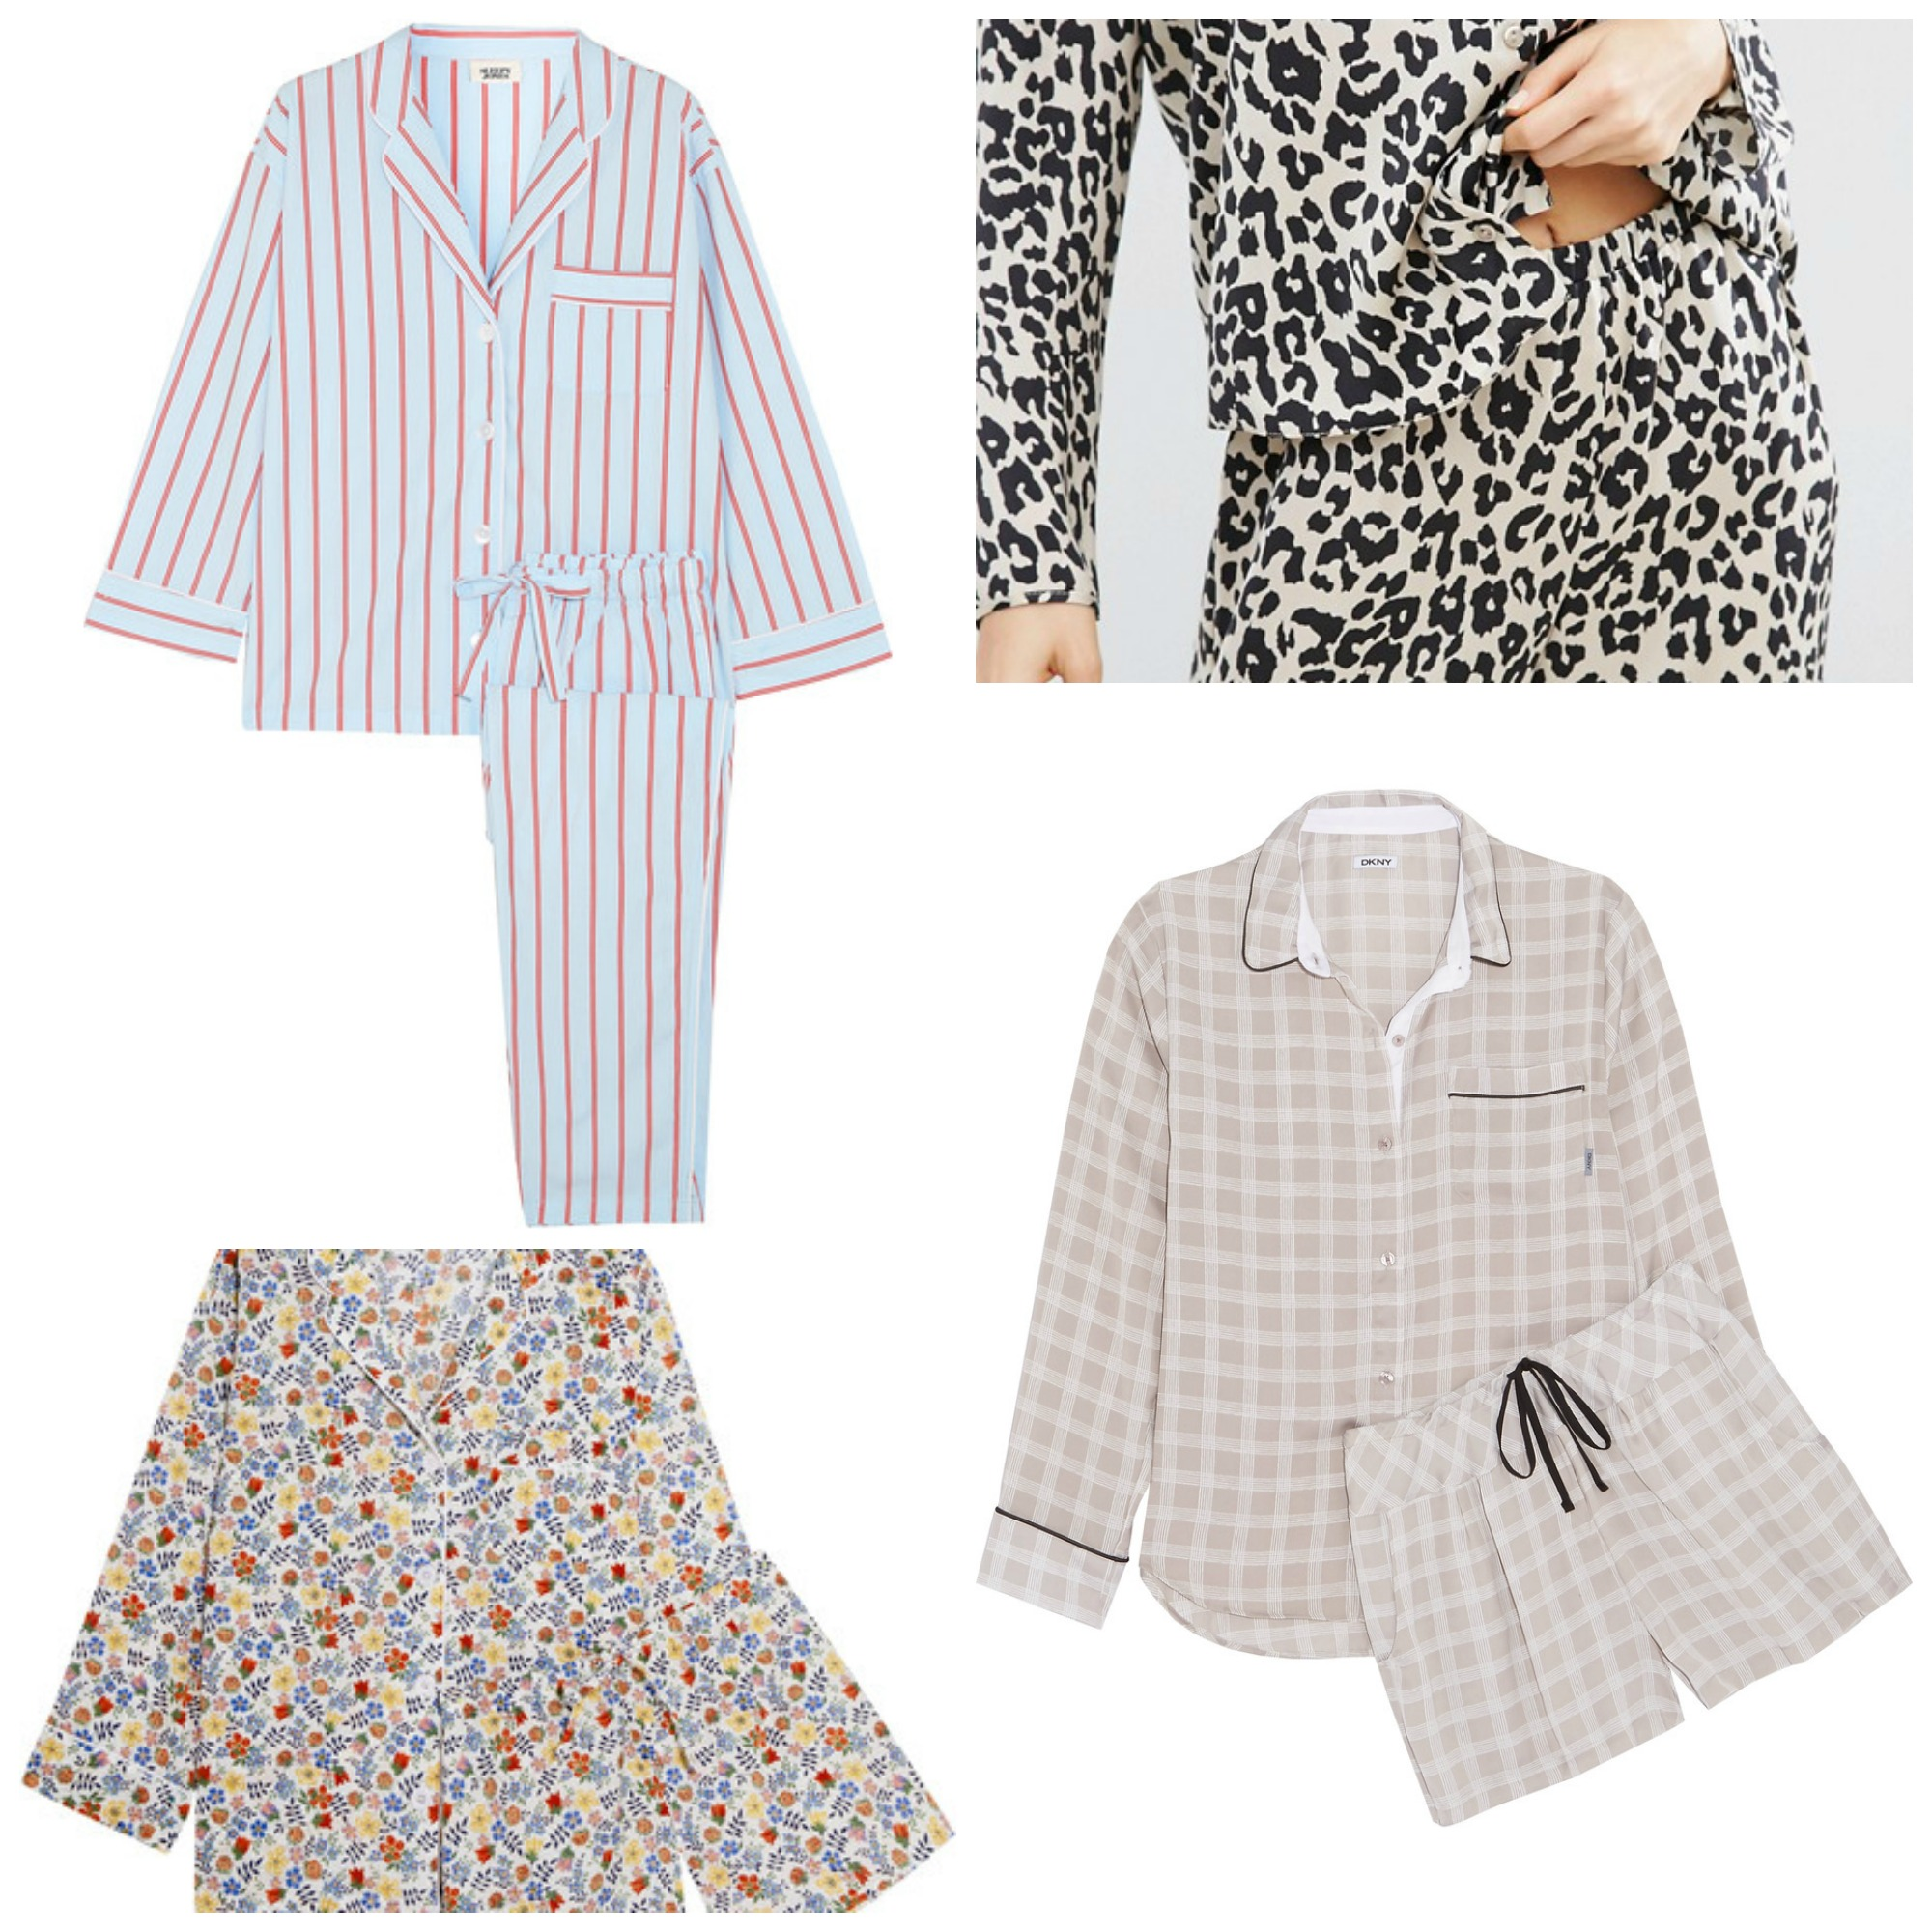 Finding The Perfect Pair Of PJ's With Lyst